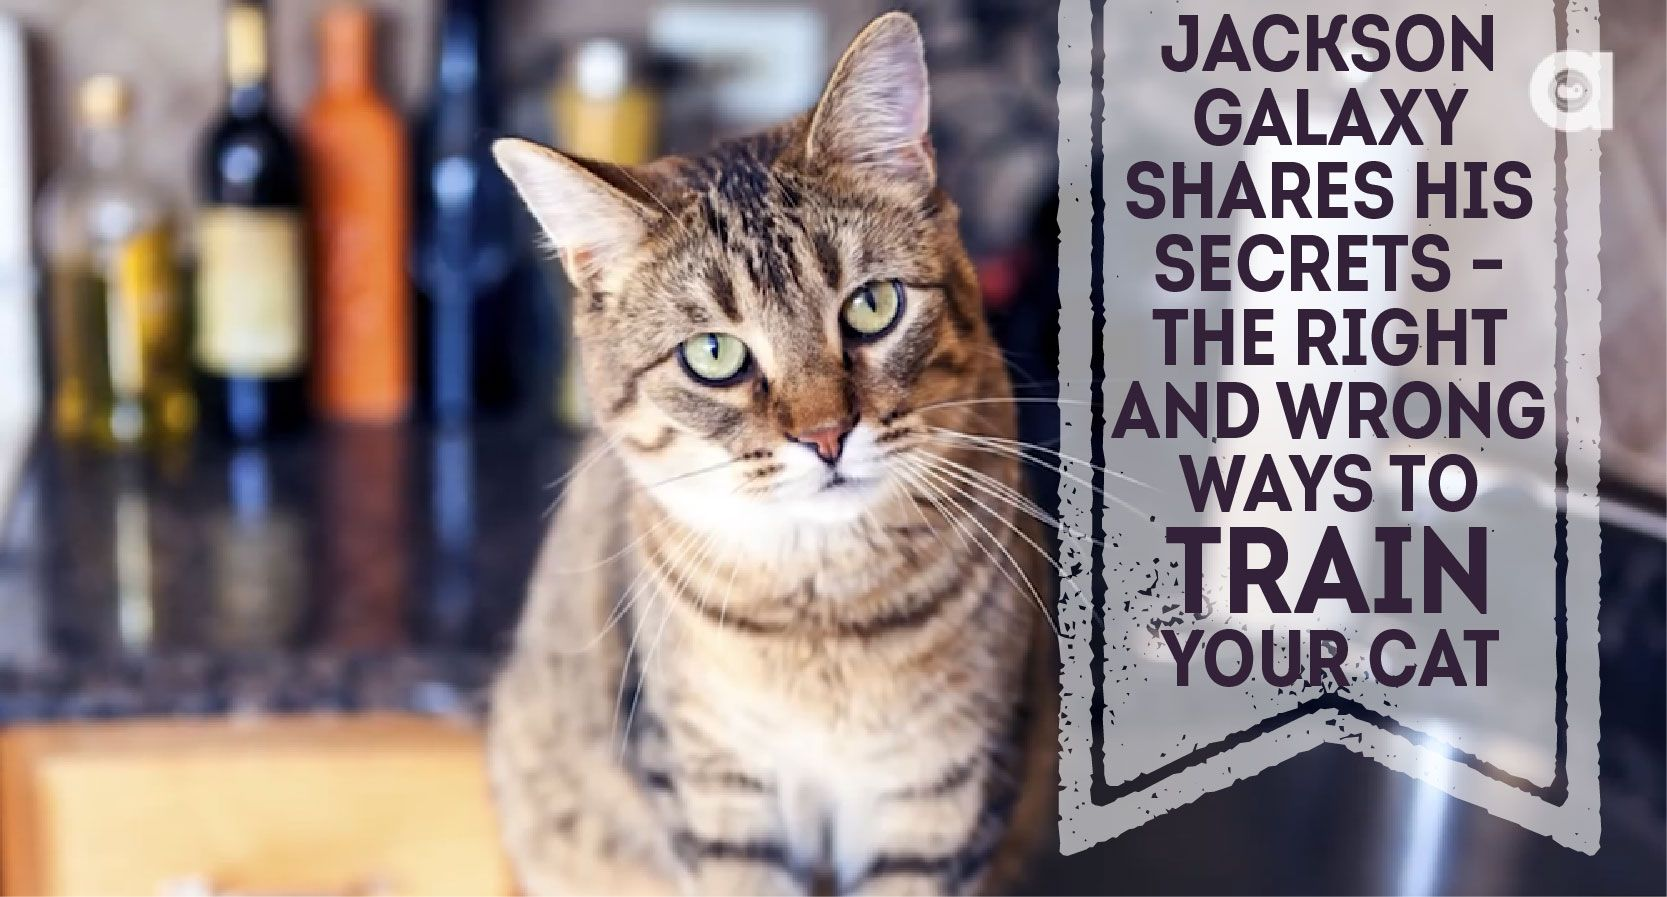 Jackson Galaxy Shares His Secrets The Right And Wrong Ways To Train Your Cat Jackson Galaxy Cats Cat Training